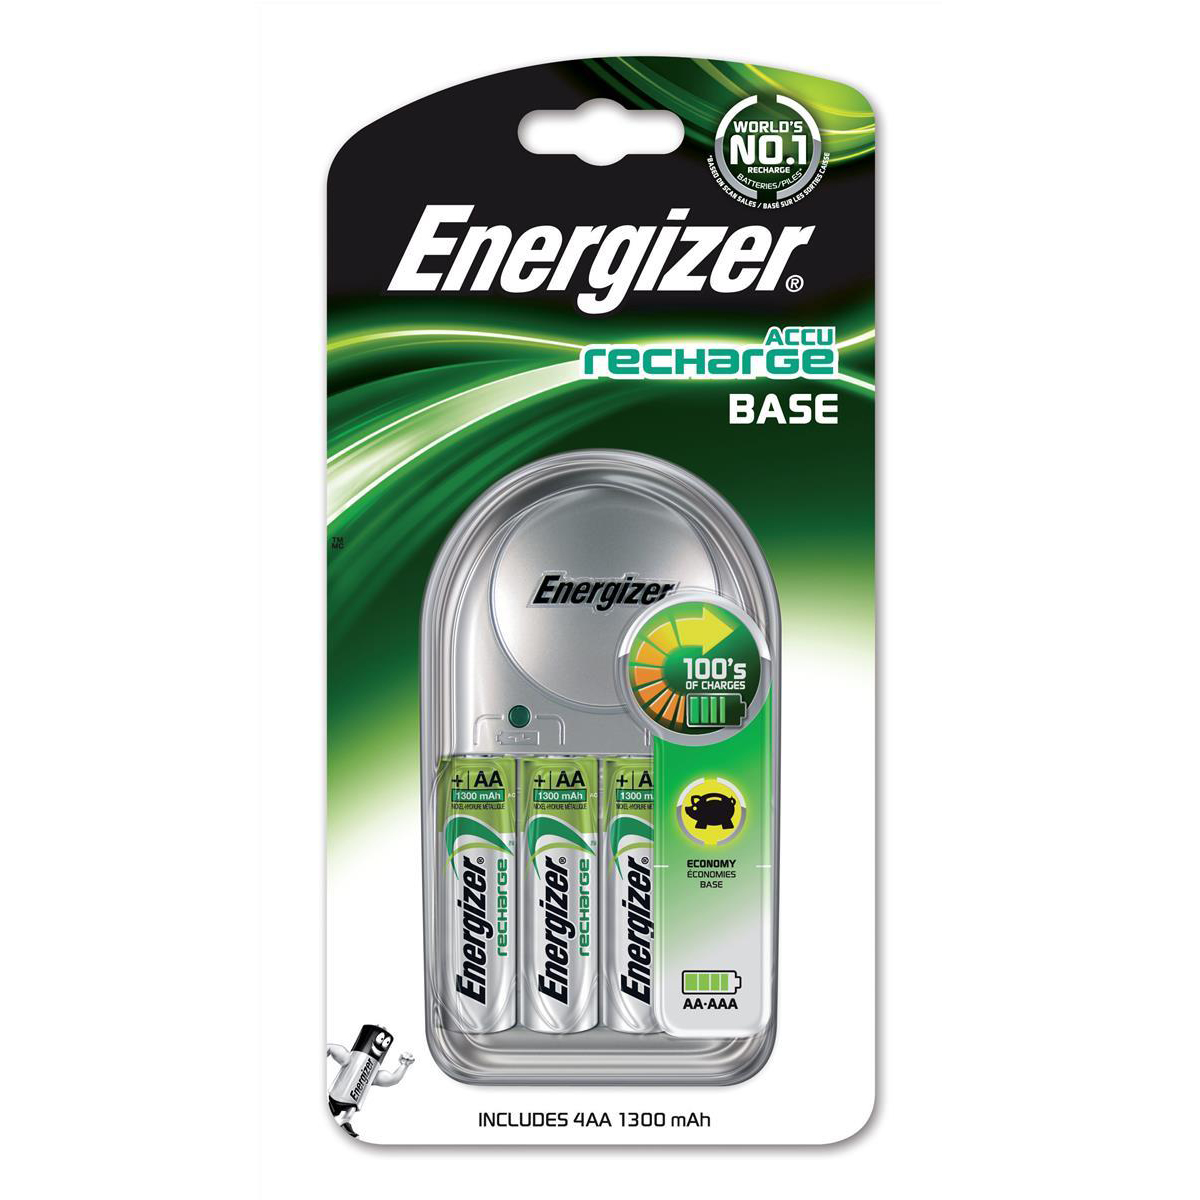 Energizer Value Battery Charger CHVC3 for AA AAA Includes 4xAA 1300mAh Batteries Ref 633157